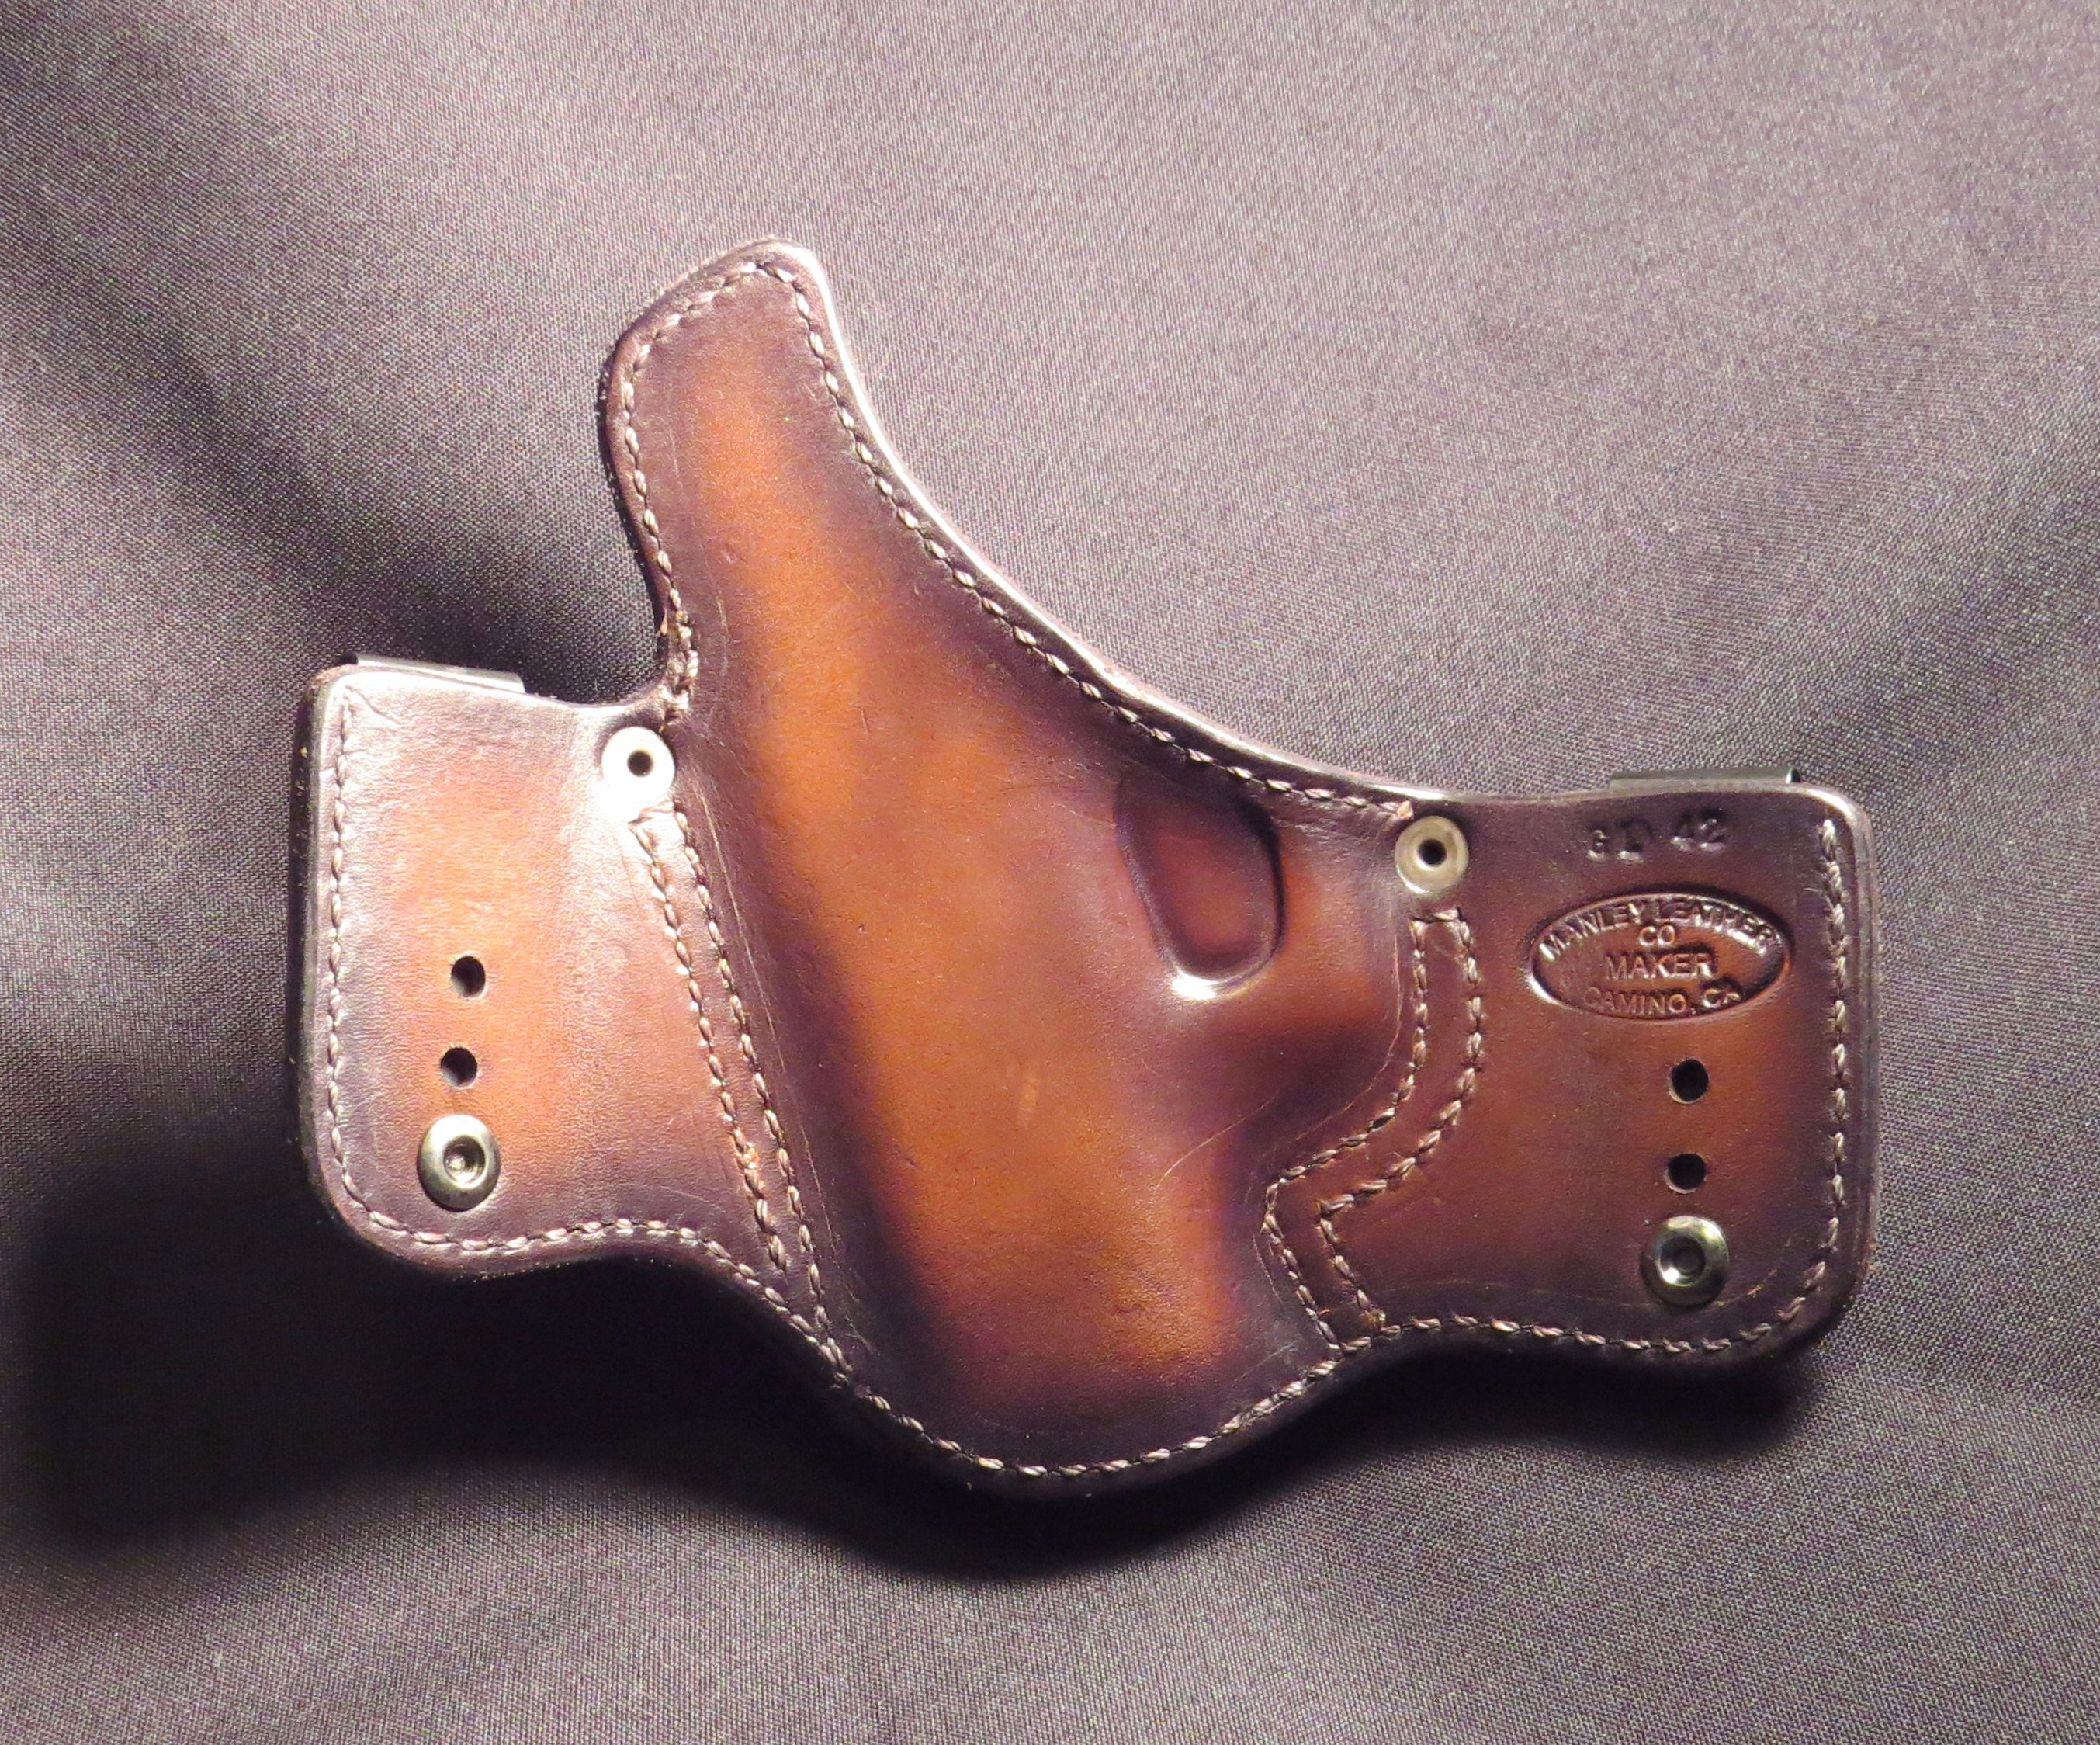 Glock 42 IWB Leather Holster